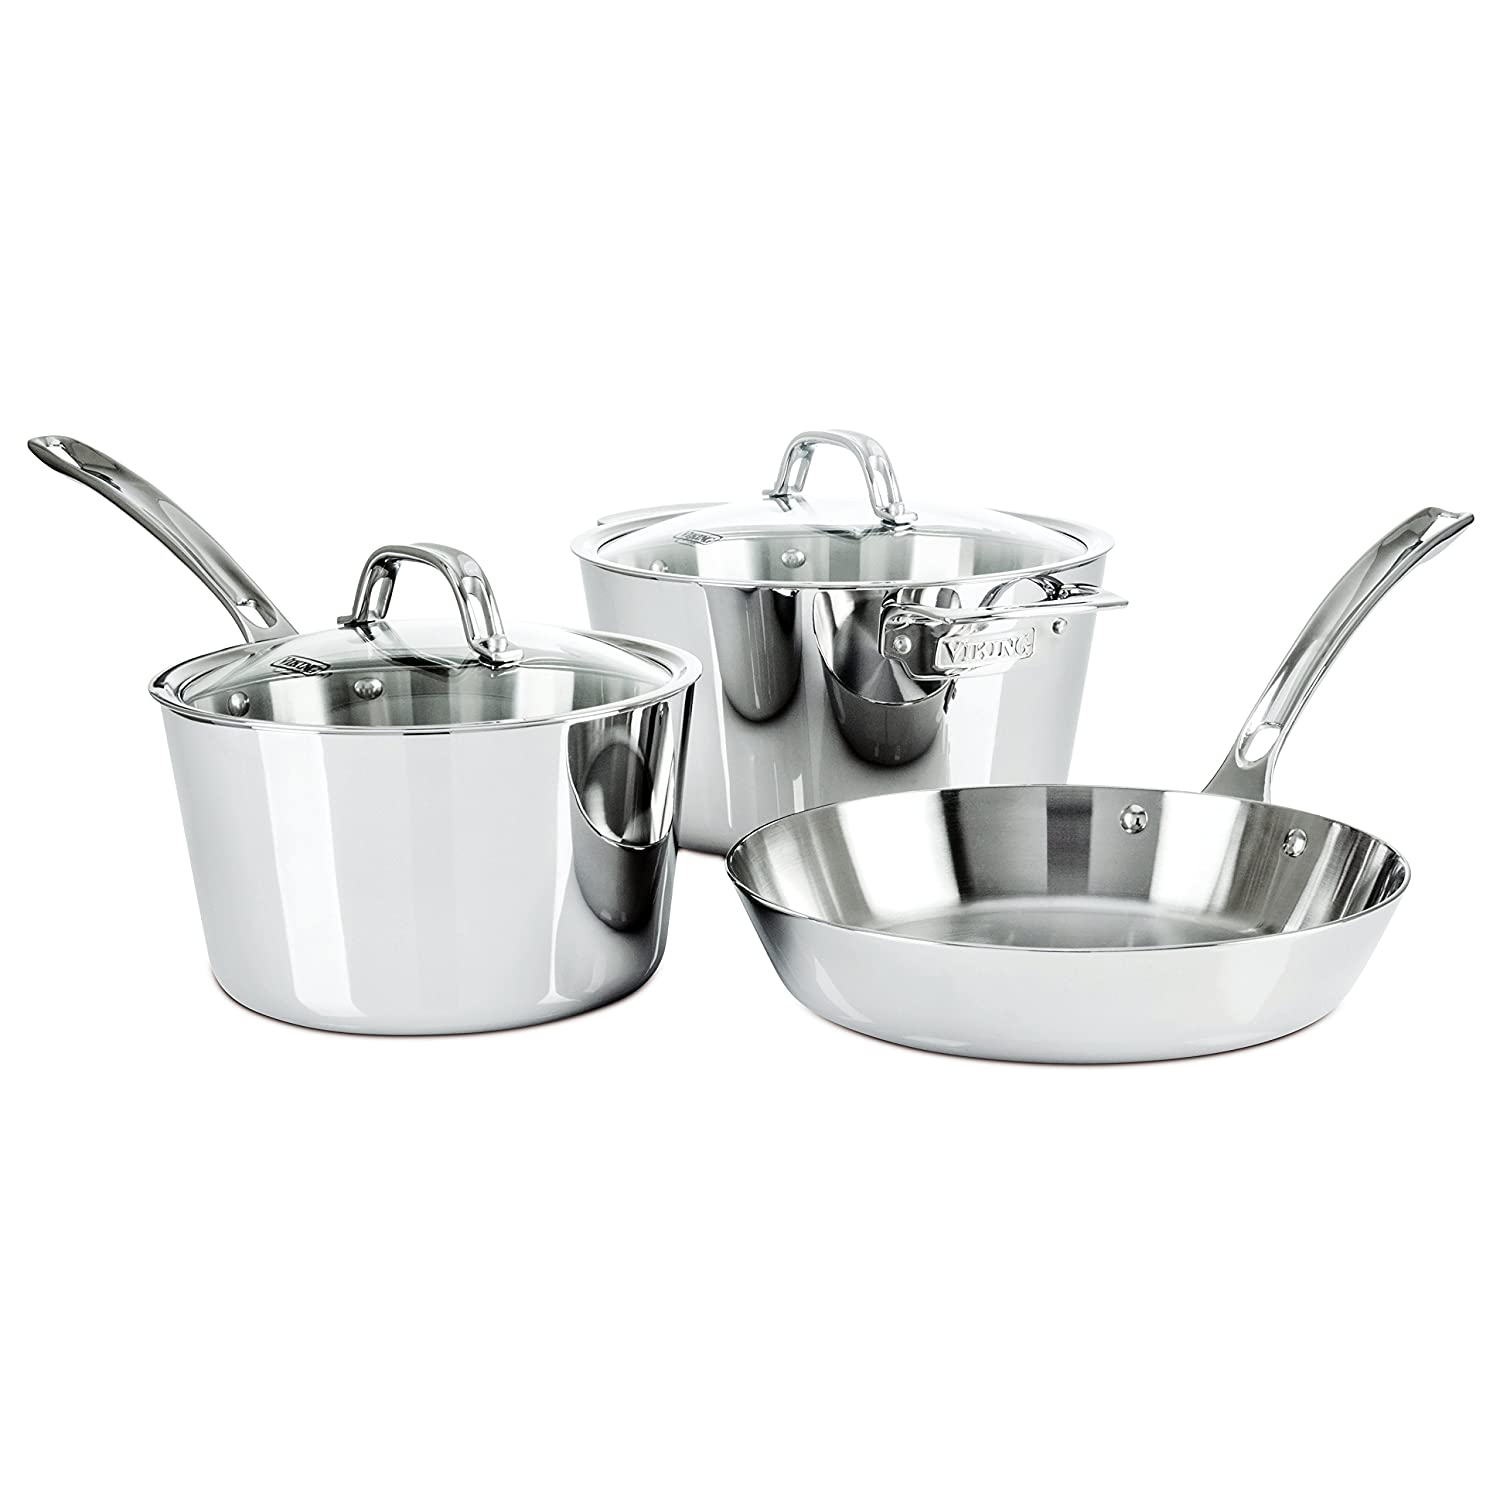 Amazon.com: Viking Contemporary 3 Ply Stainless Steel Cookware Set, 5  Piece: Kitchen U0026 Dining